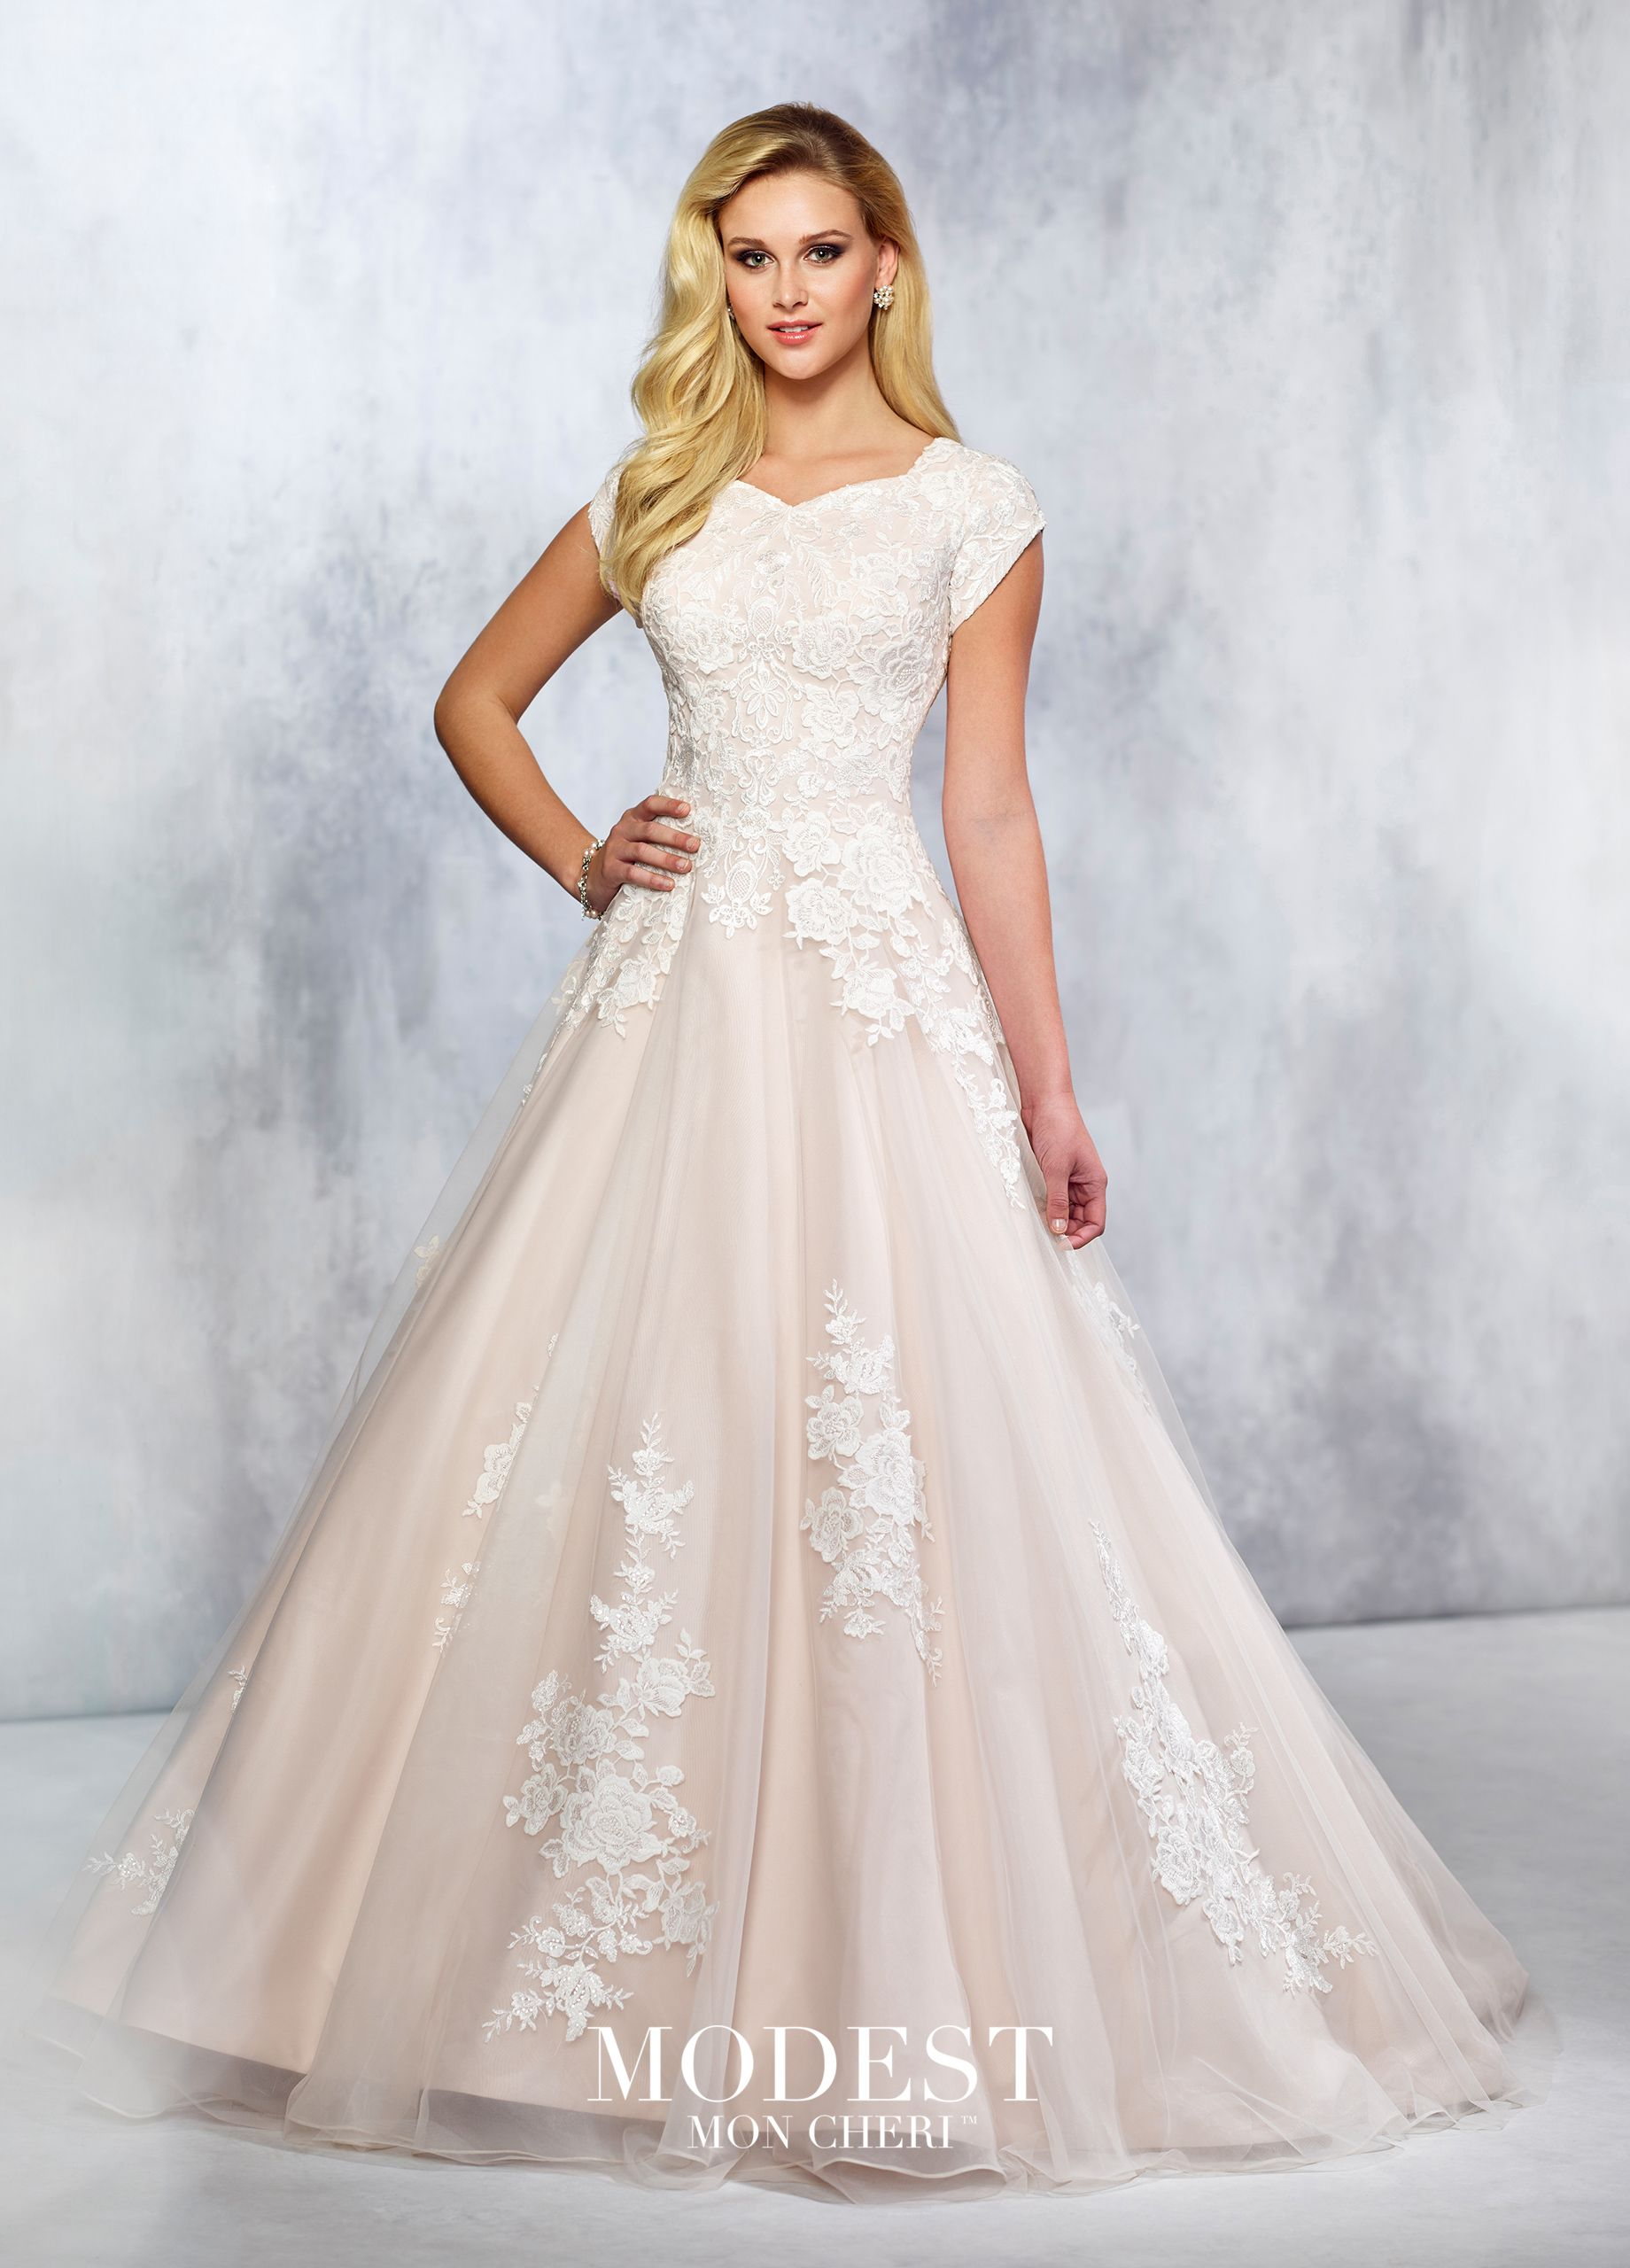 a04a48db05c mon cheri wedding dress TR21714 - Tulle and Belgium lace full A-line gown  with lace accented cap sleeves